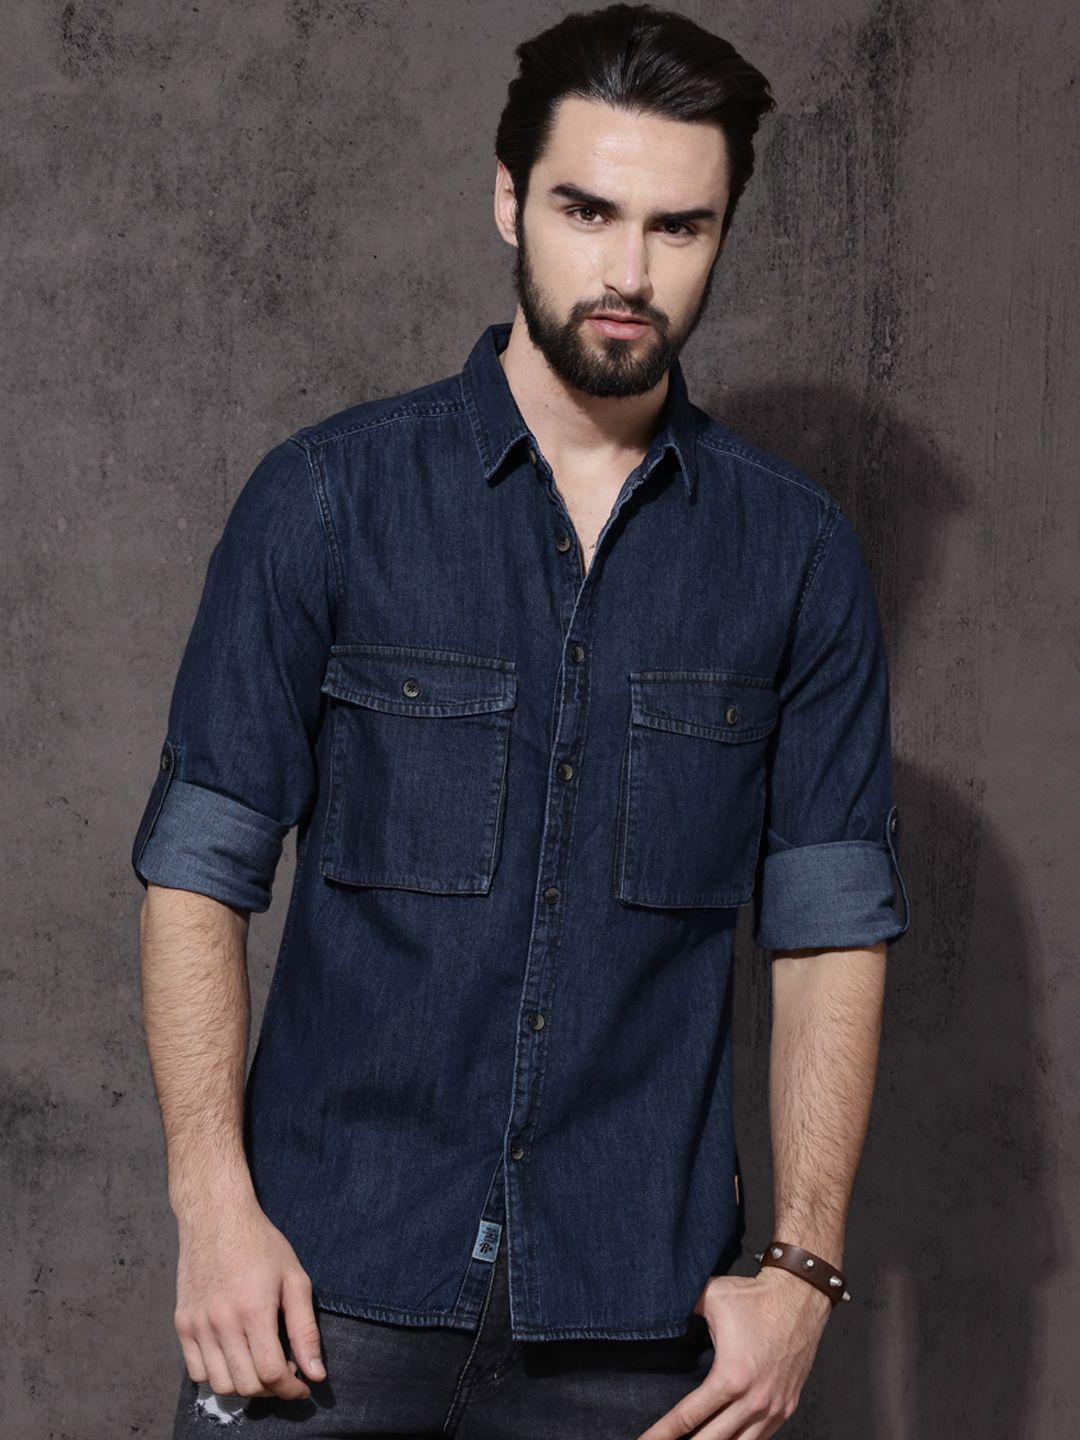 5c649fa1c Roadster Blue Regular Fit Solid Casual Denim Shirt  Blue Cotton Denim  Solid Slimfit Casual